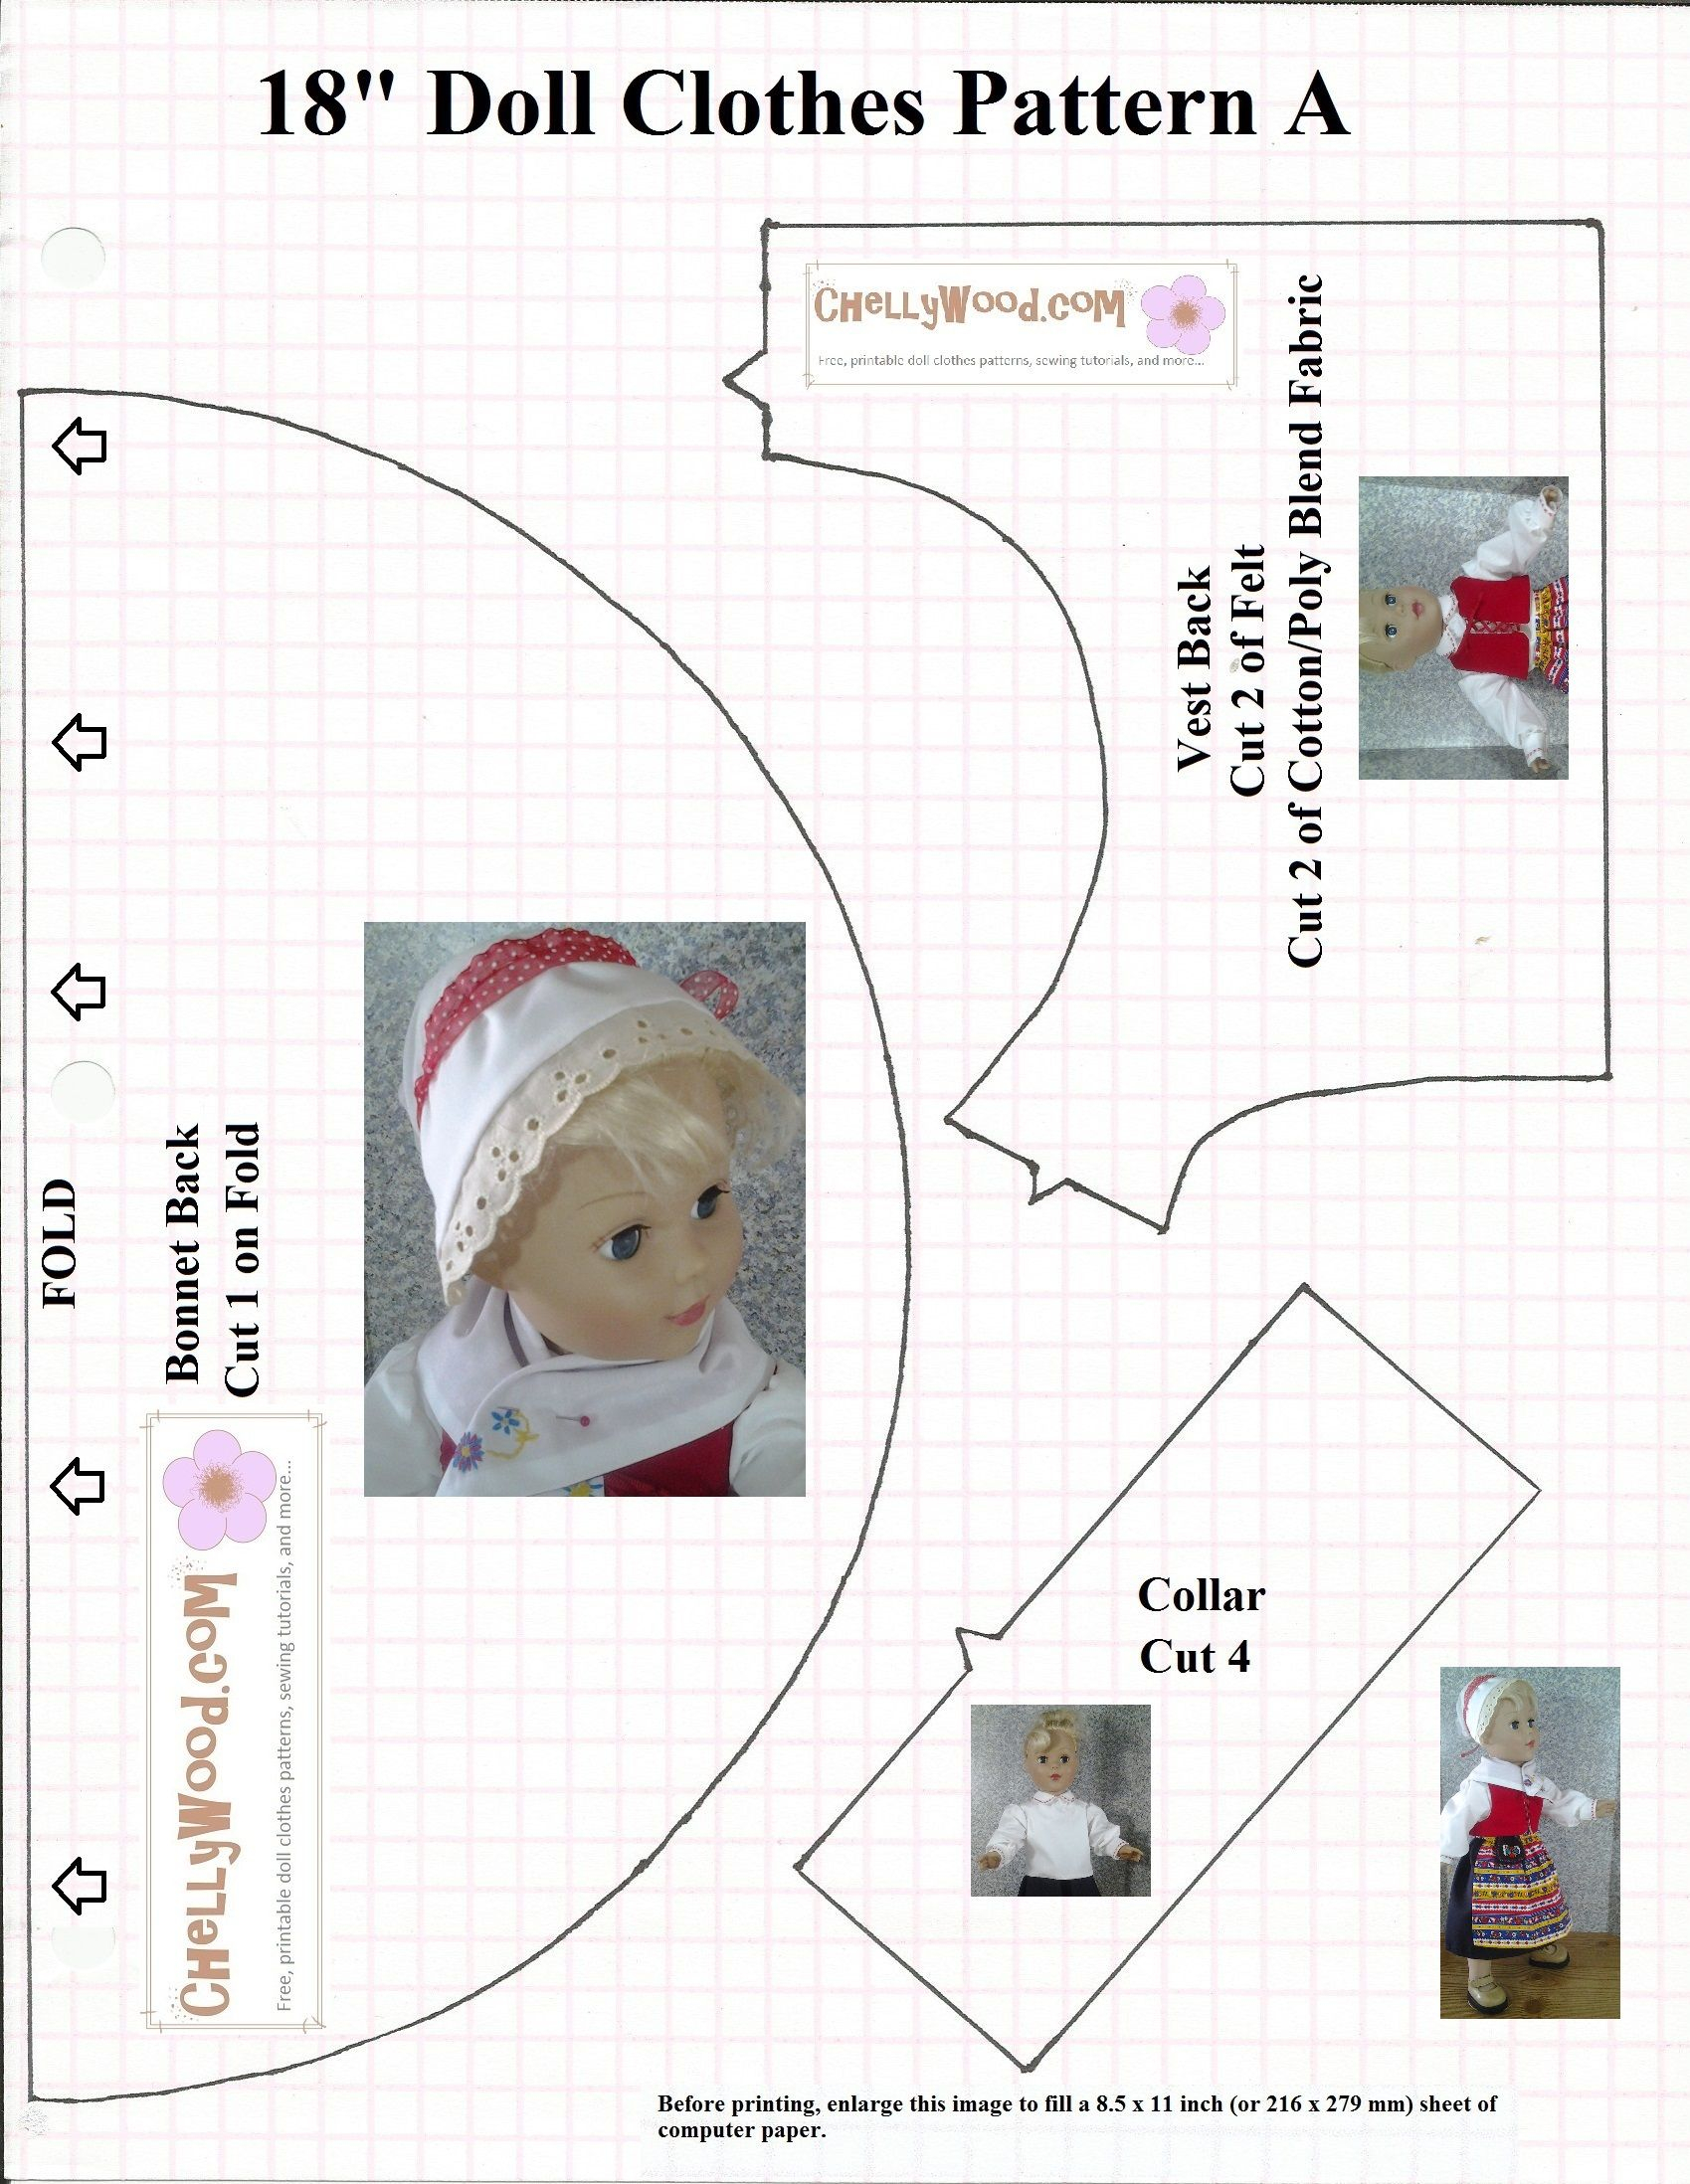 Visit ChellyWood For More Free Printable AG Doll